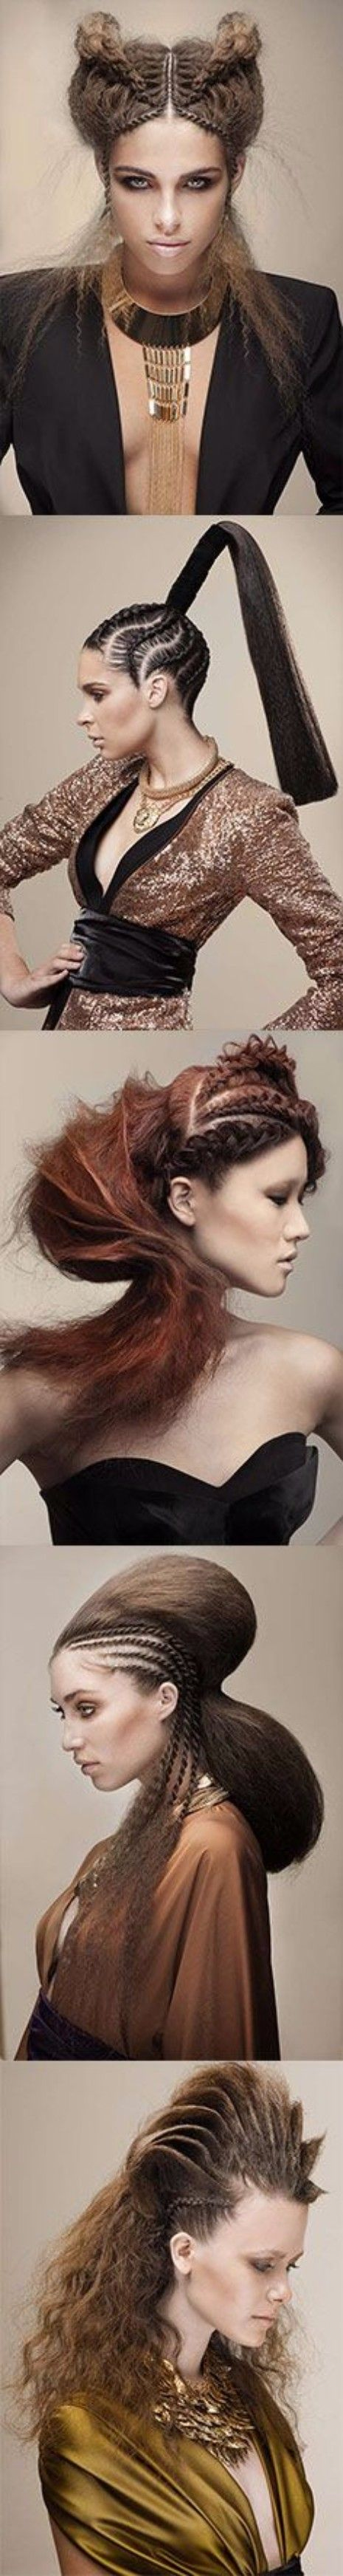 ridiculous haircuts hairstyle trends come and go some are more